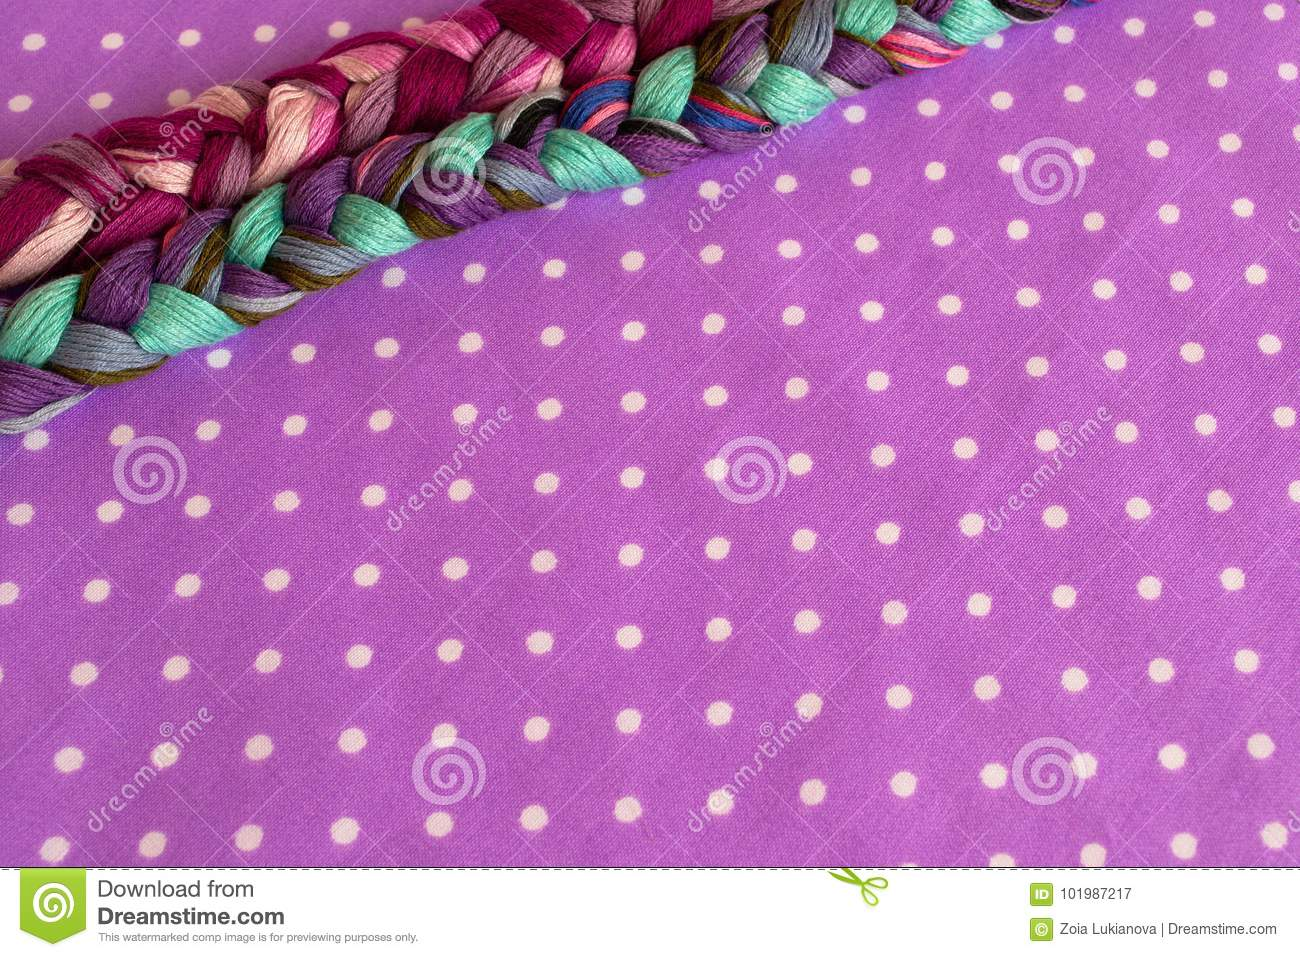 Embroidery Threads Of Different Colors On A Purple Background Stock